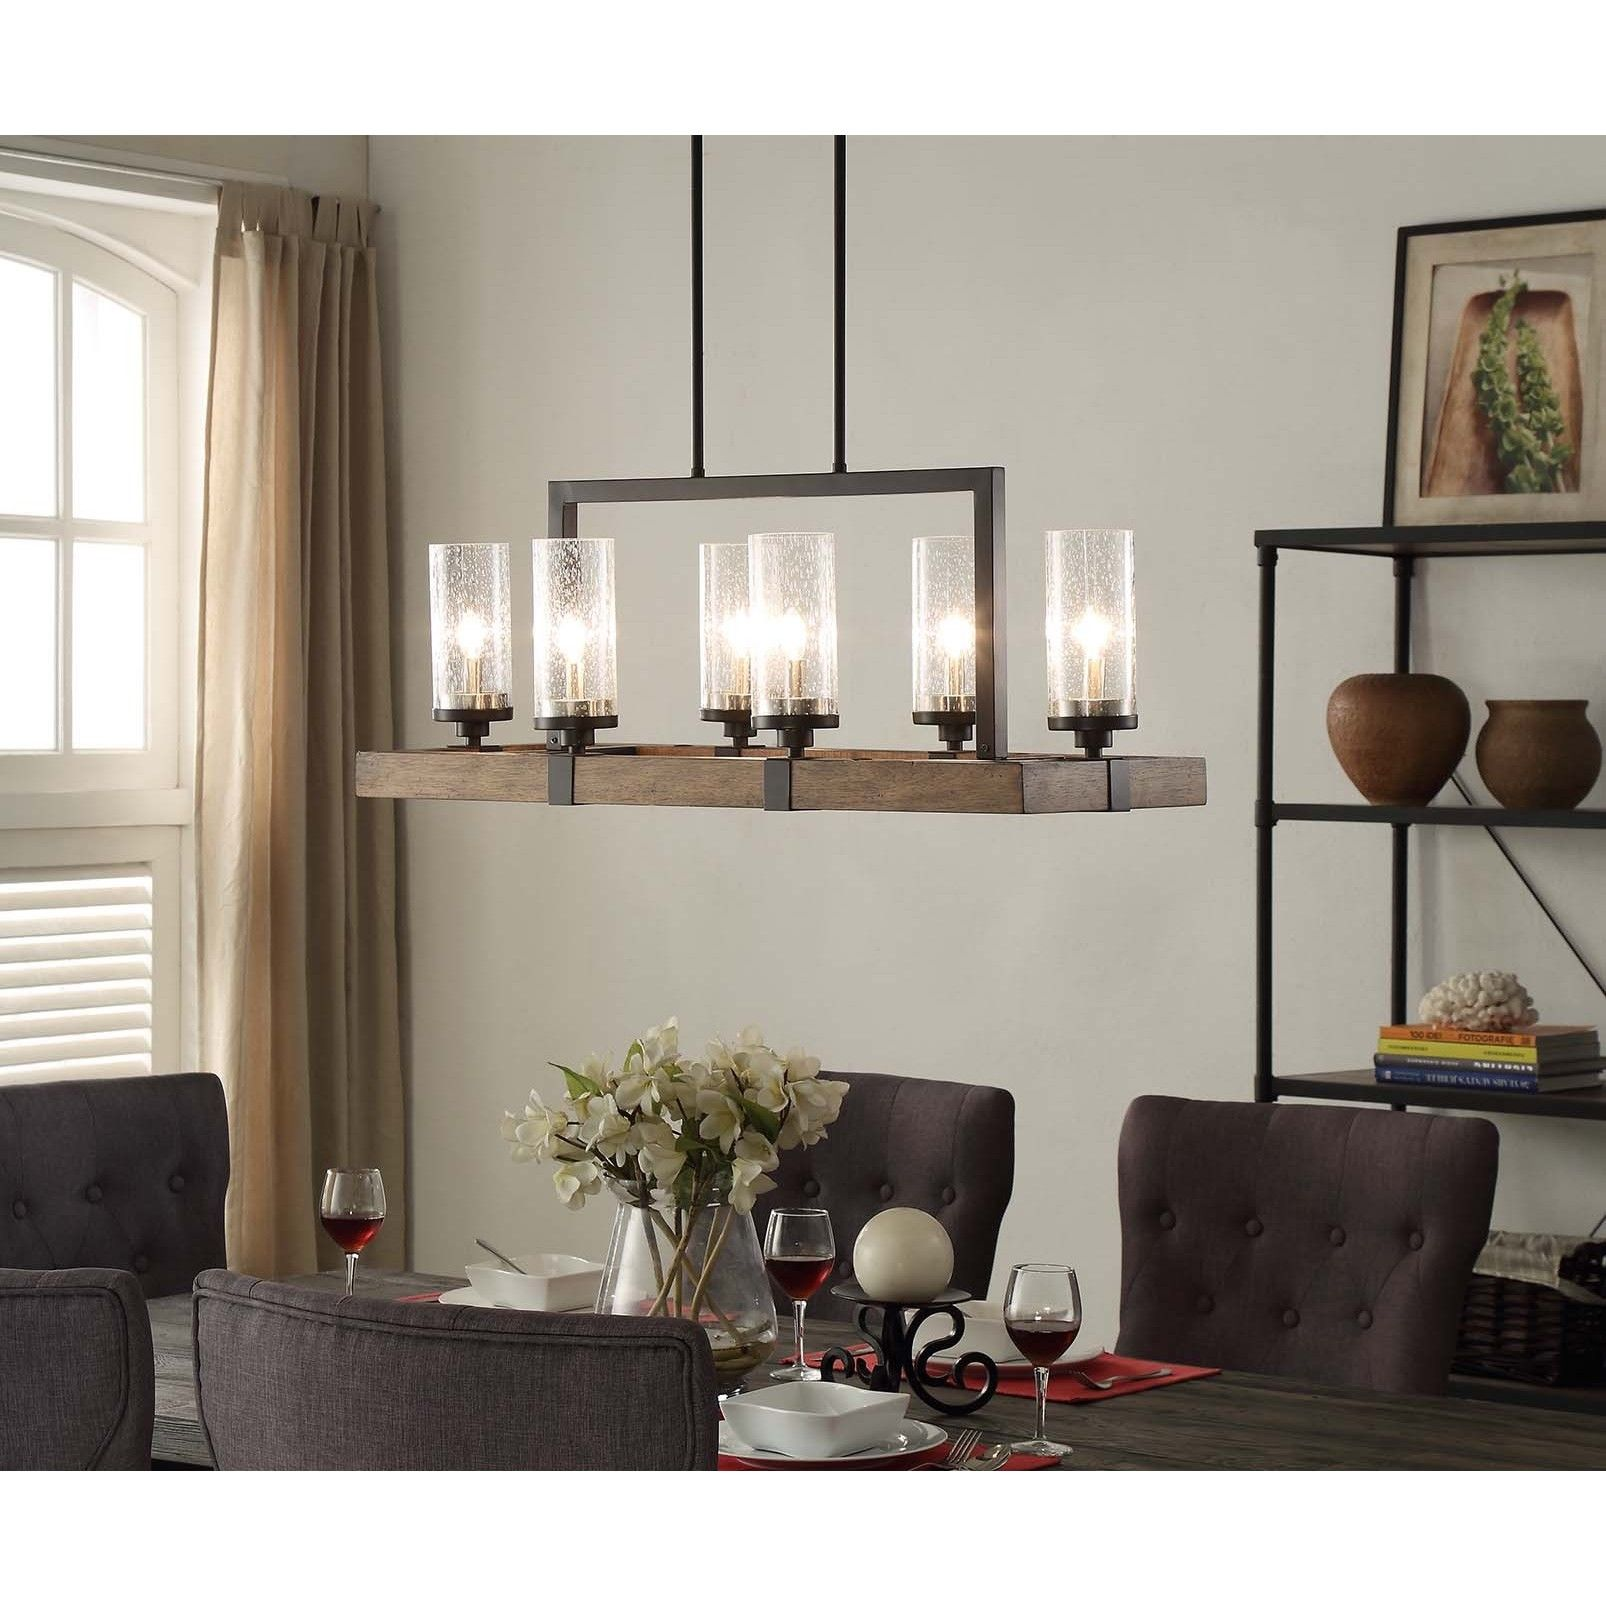 This Unique Light Fixture Features A Rectangular Shaped Frame Made Of Warm Brown Wood That Is Accented By Black Metal And Glass Shades